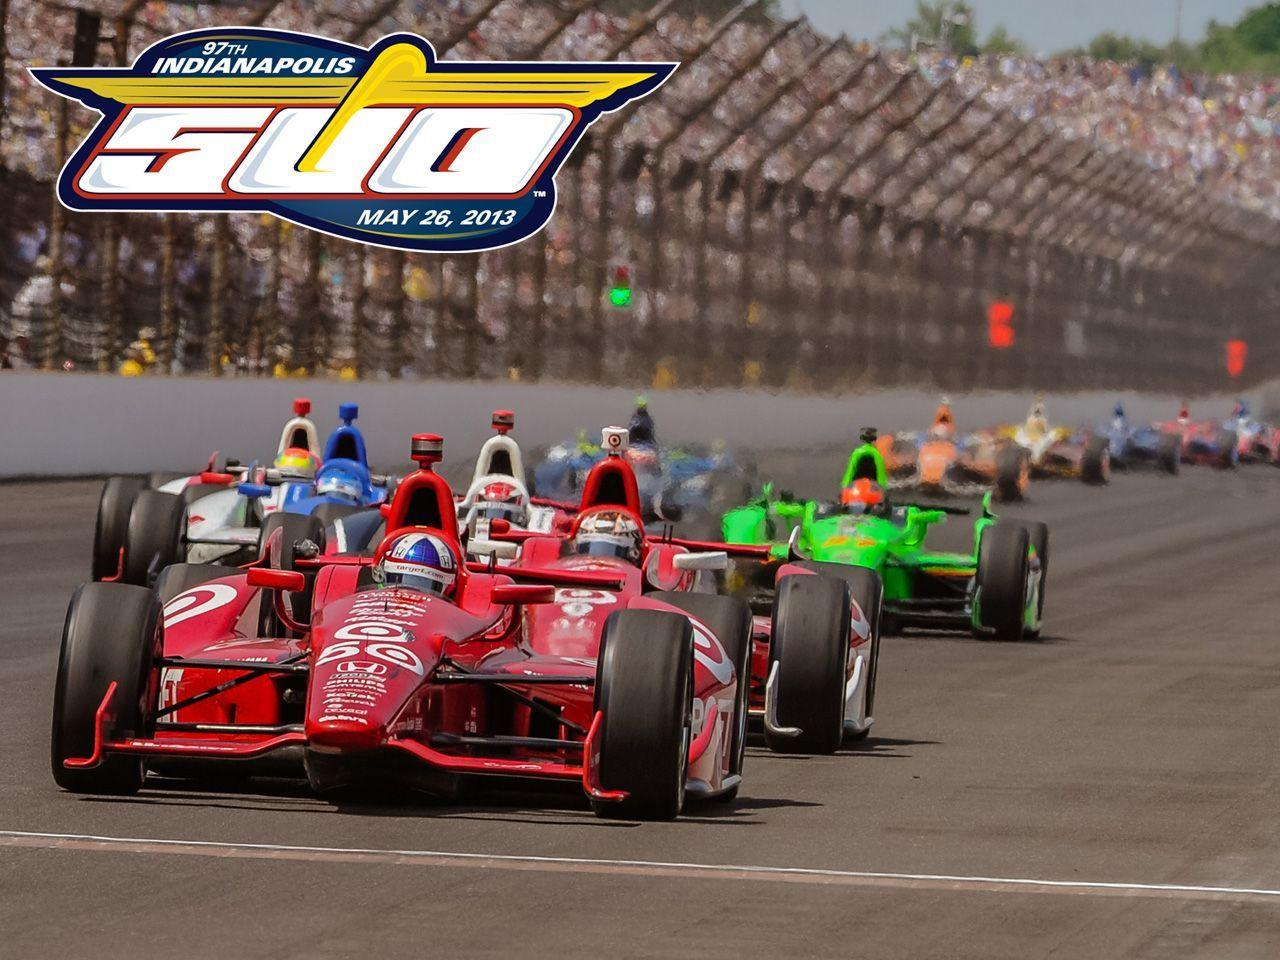 Indianapolis 500 Motor Speedway | Indy 500 - Wallpapers | DARIO ...